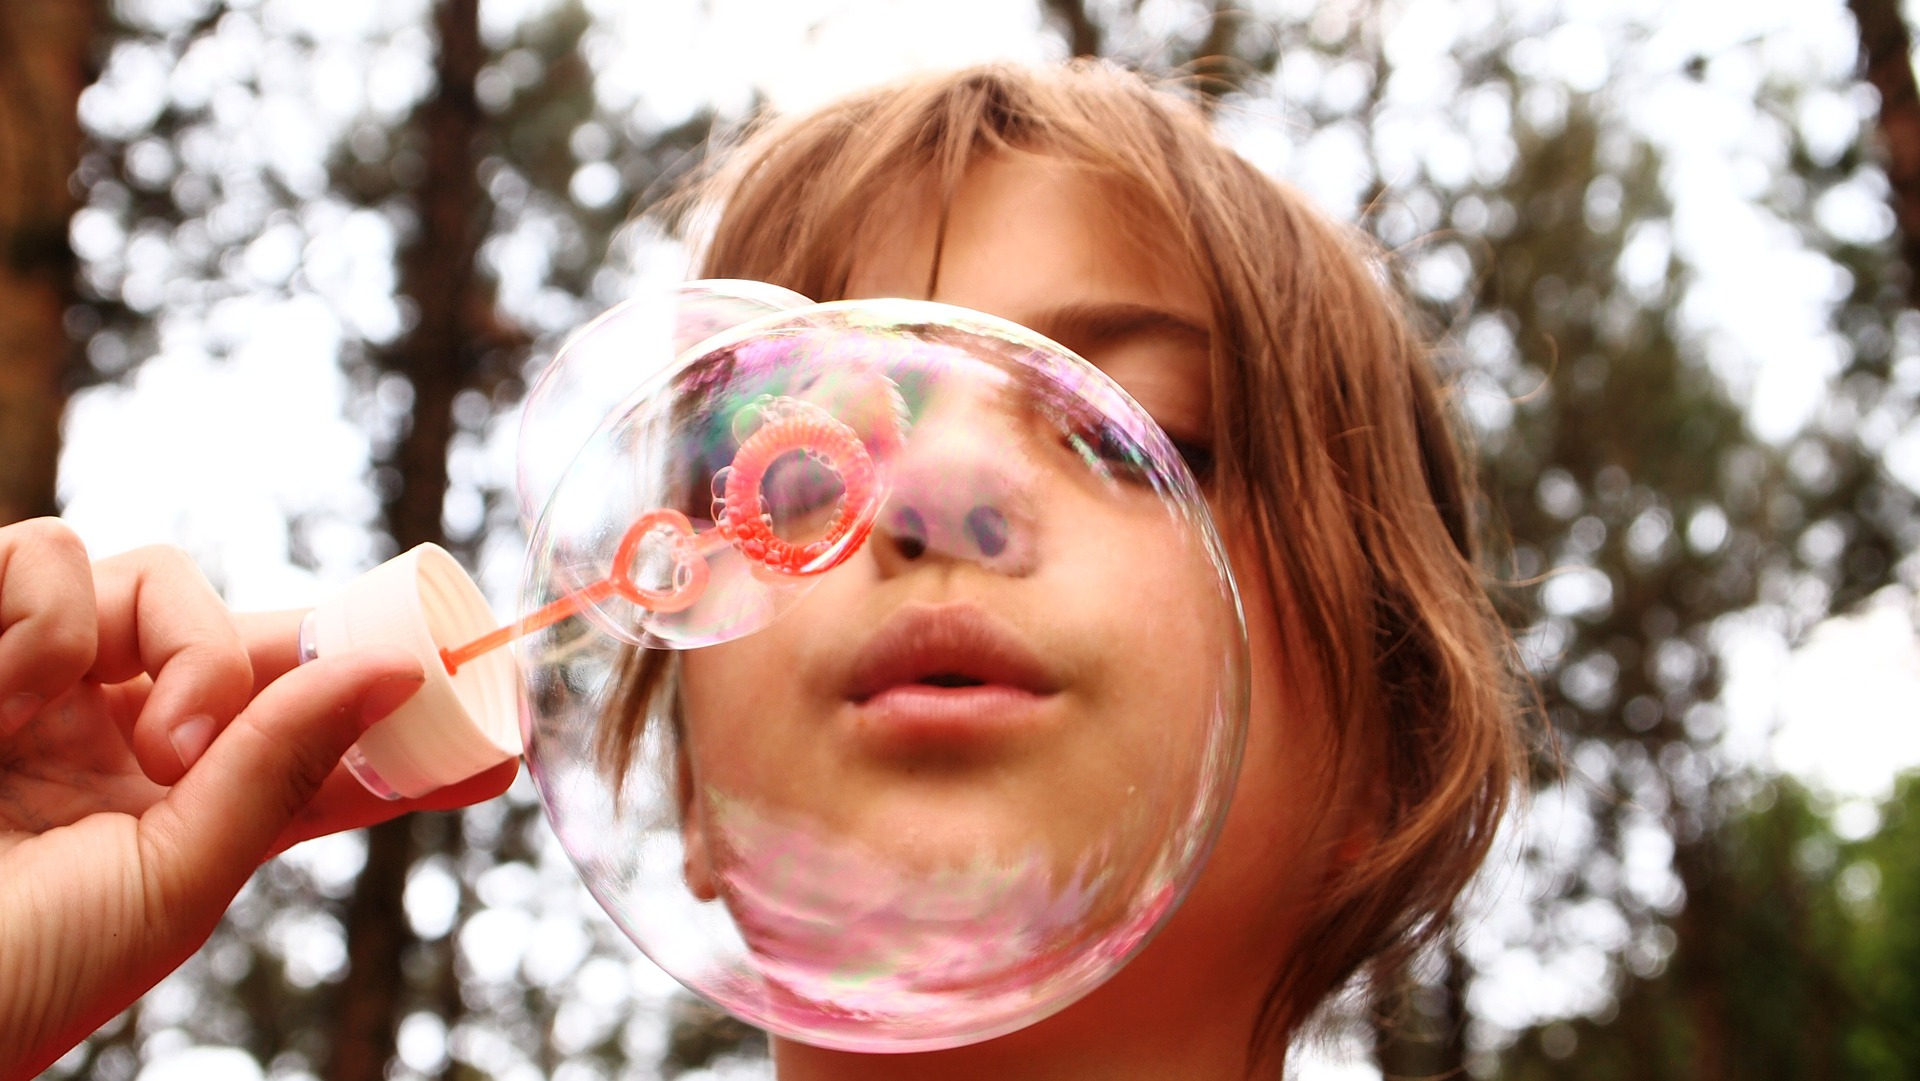 blow-bubbles-668950_1920.jpg